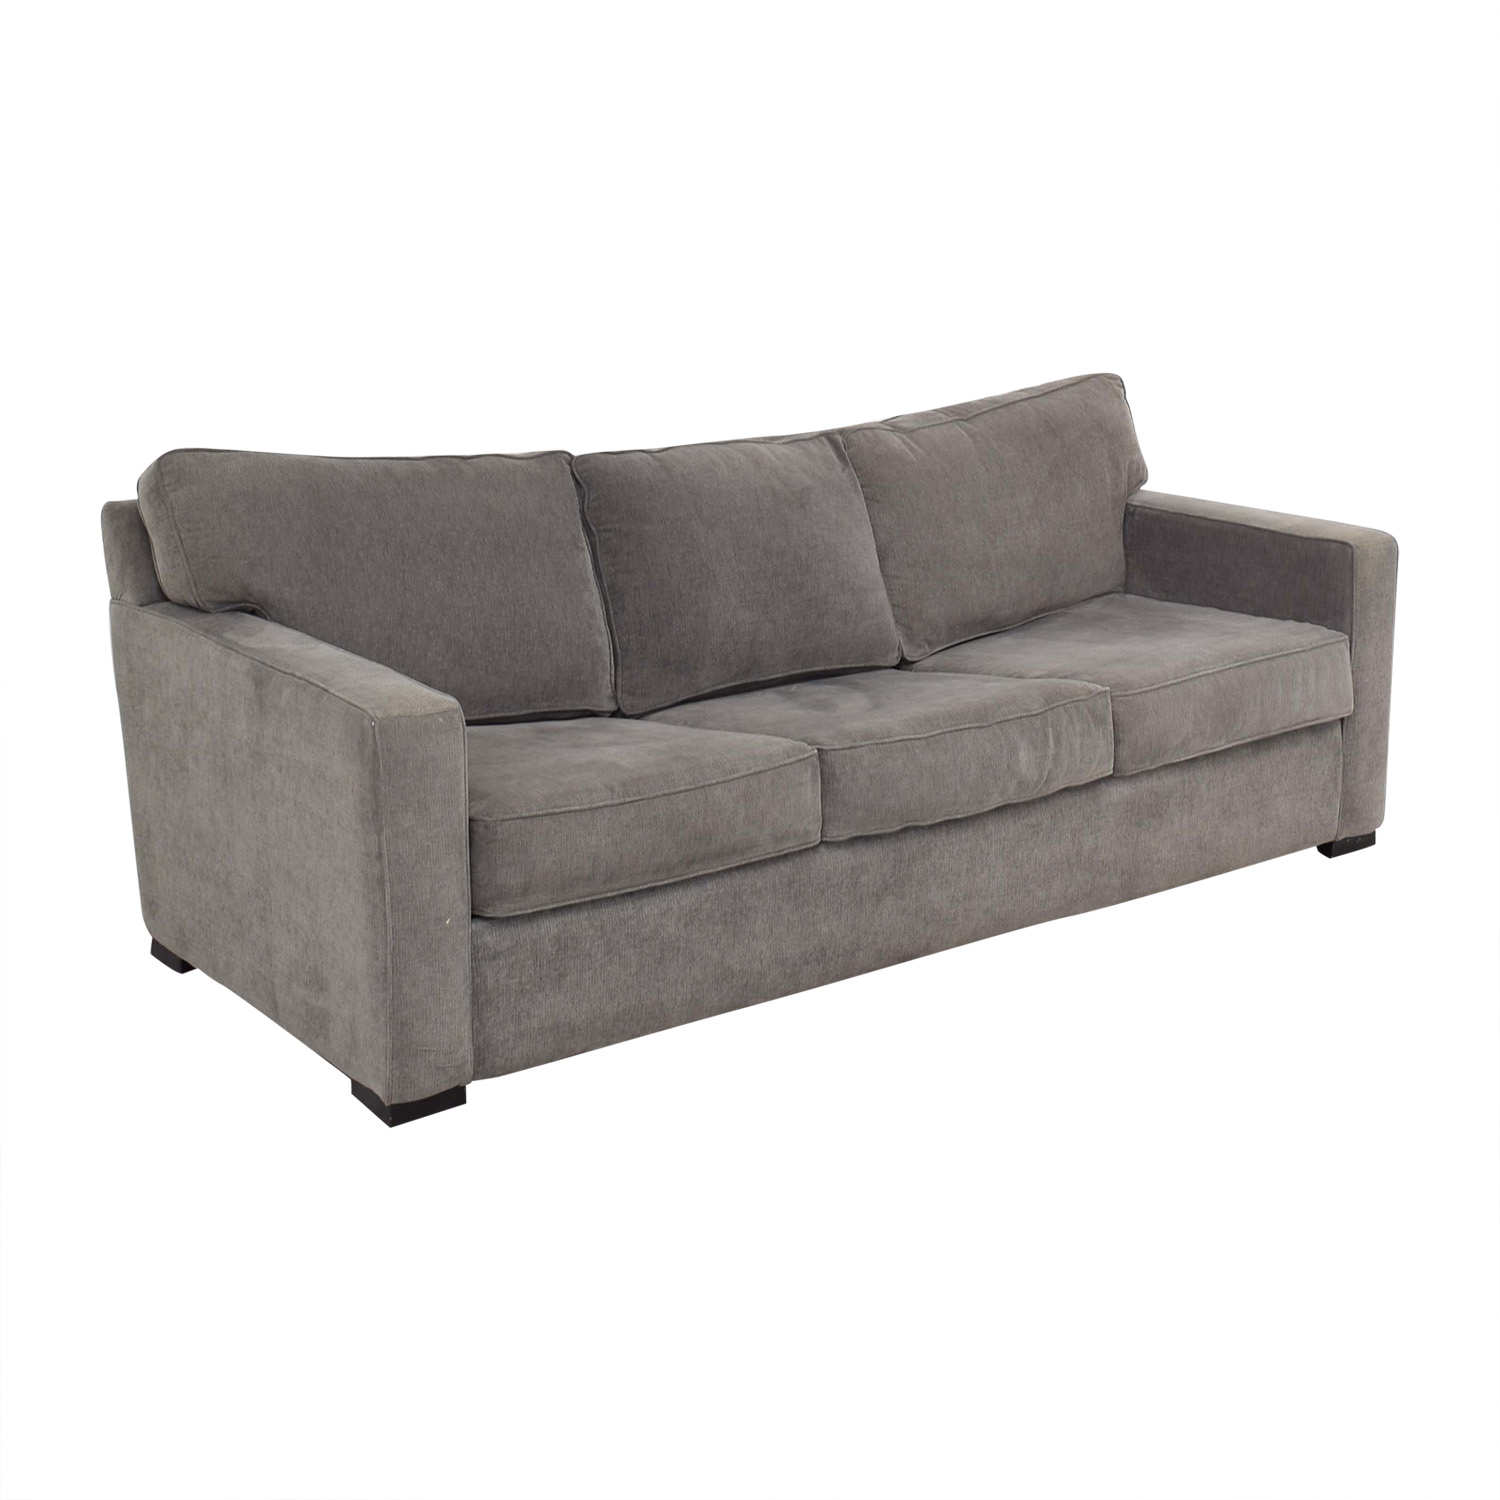 buy Macy's Radley Queen Sleeper Sofa Macy's Sofa Beds